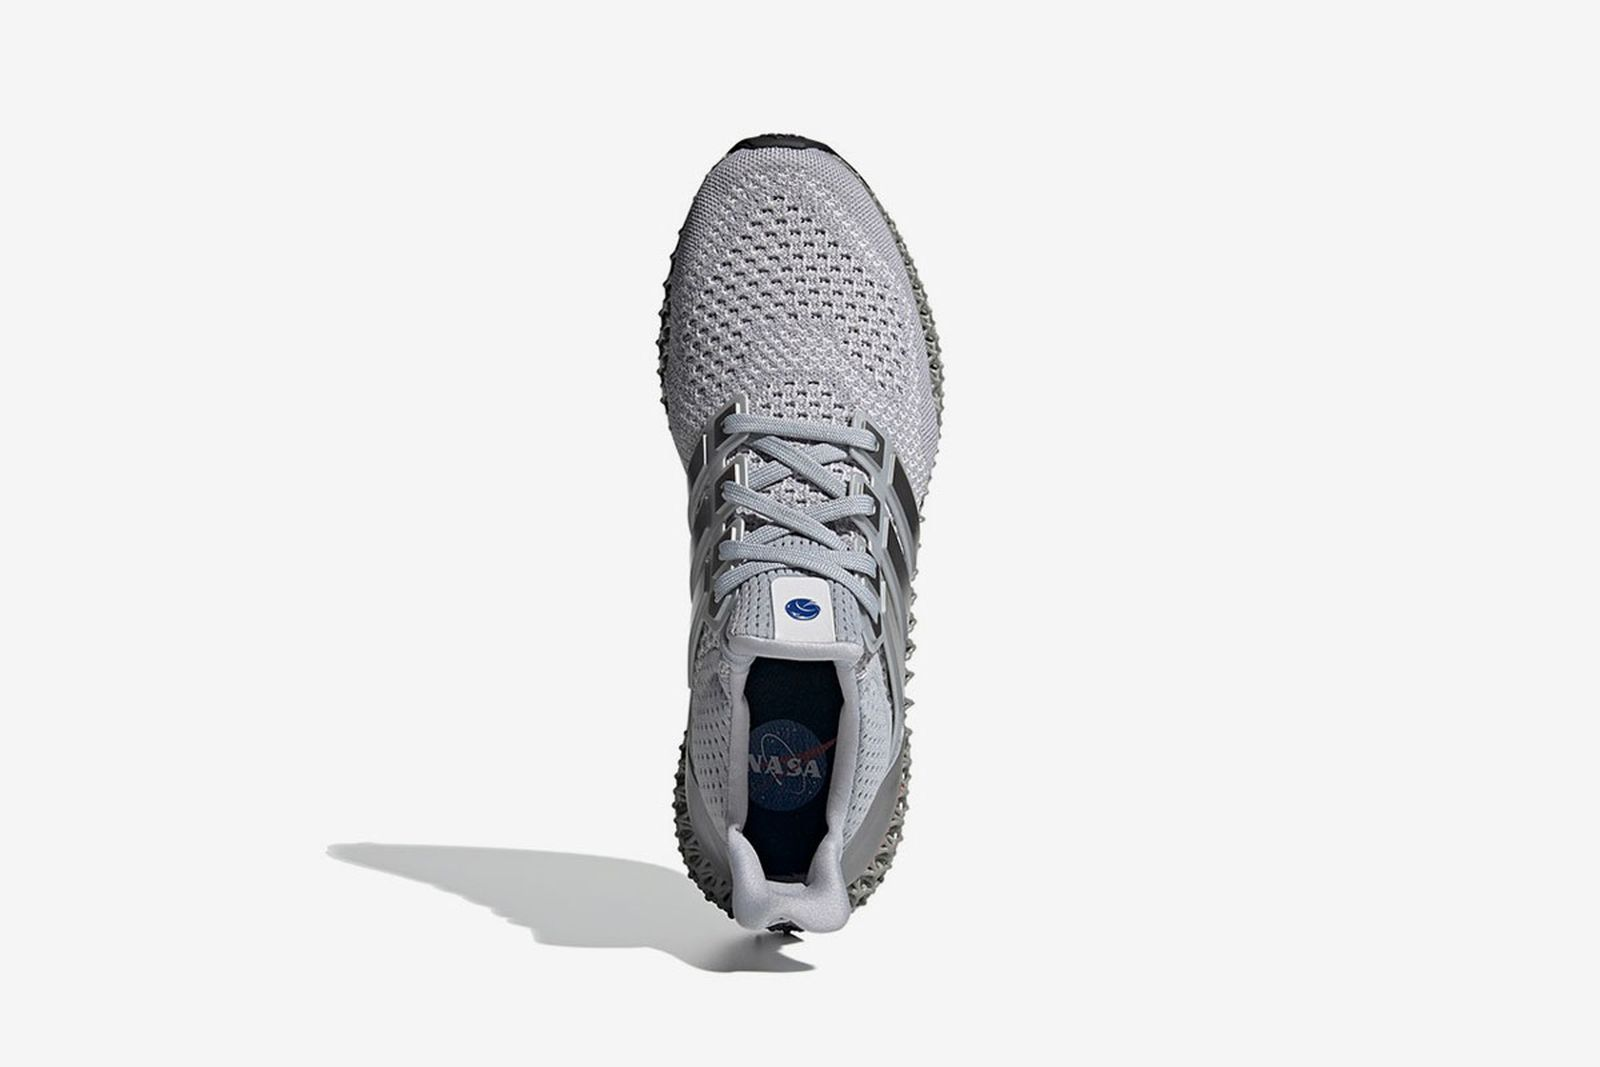 adidas-ultra4d-halo-silver-nasa-release-date-price-05